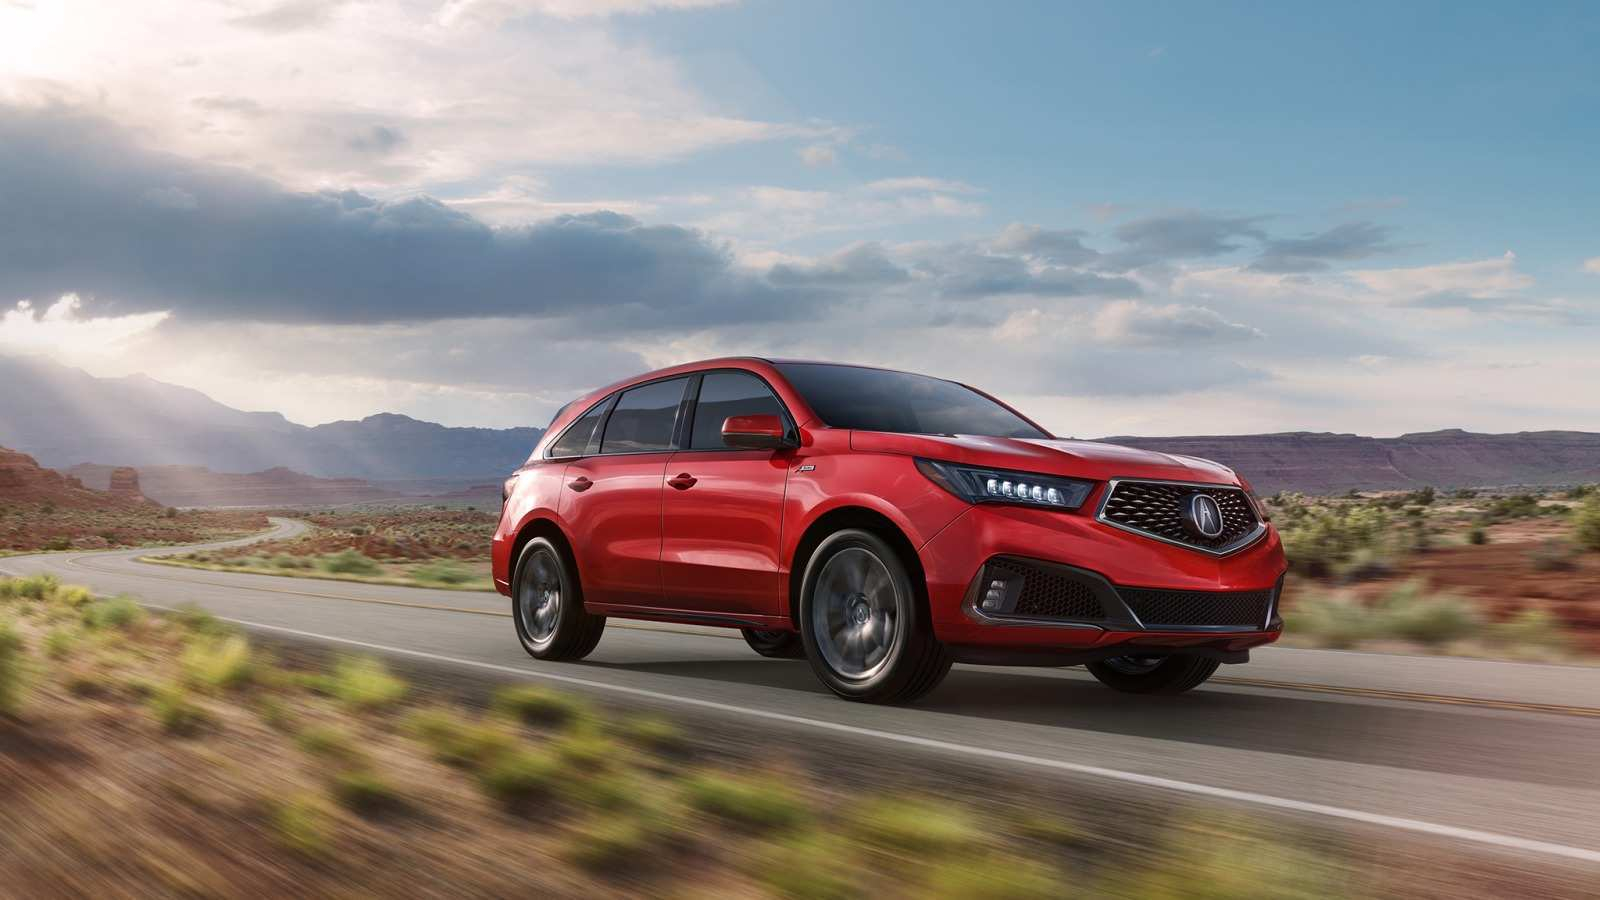 66 All New Acura Mdx 2020 Price Pictures by Acura Mdx 2020 Price